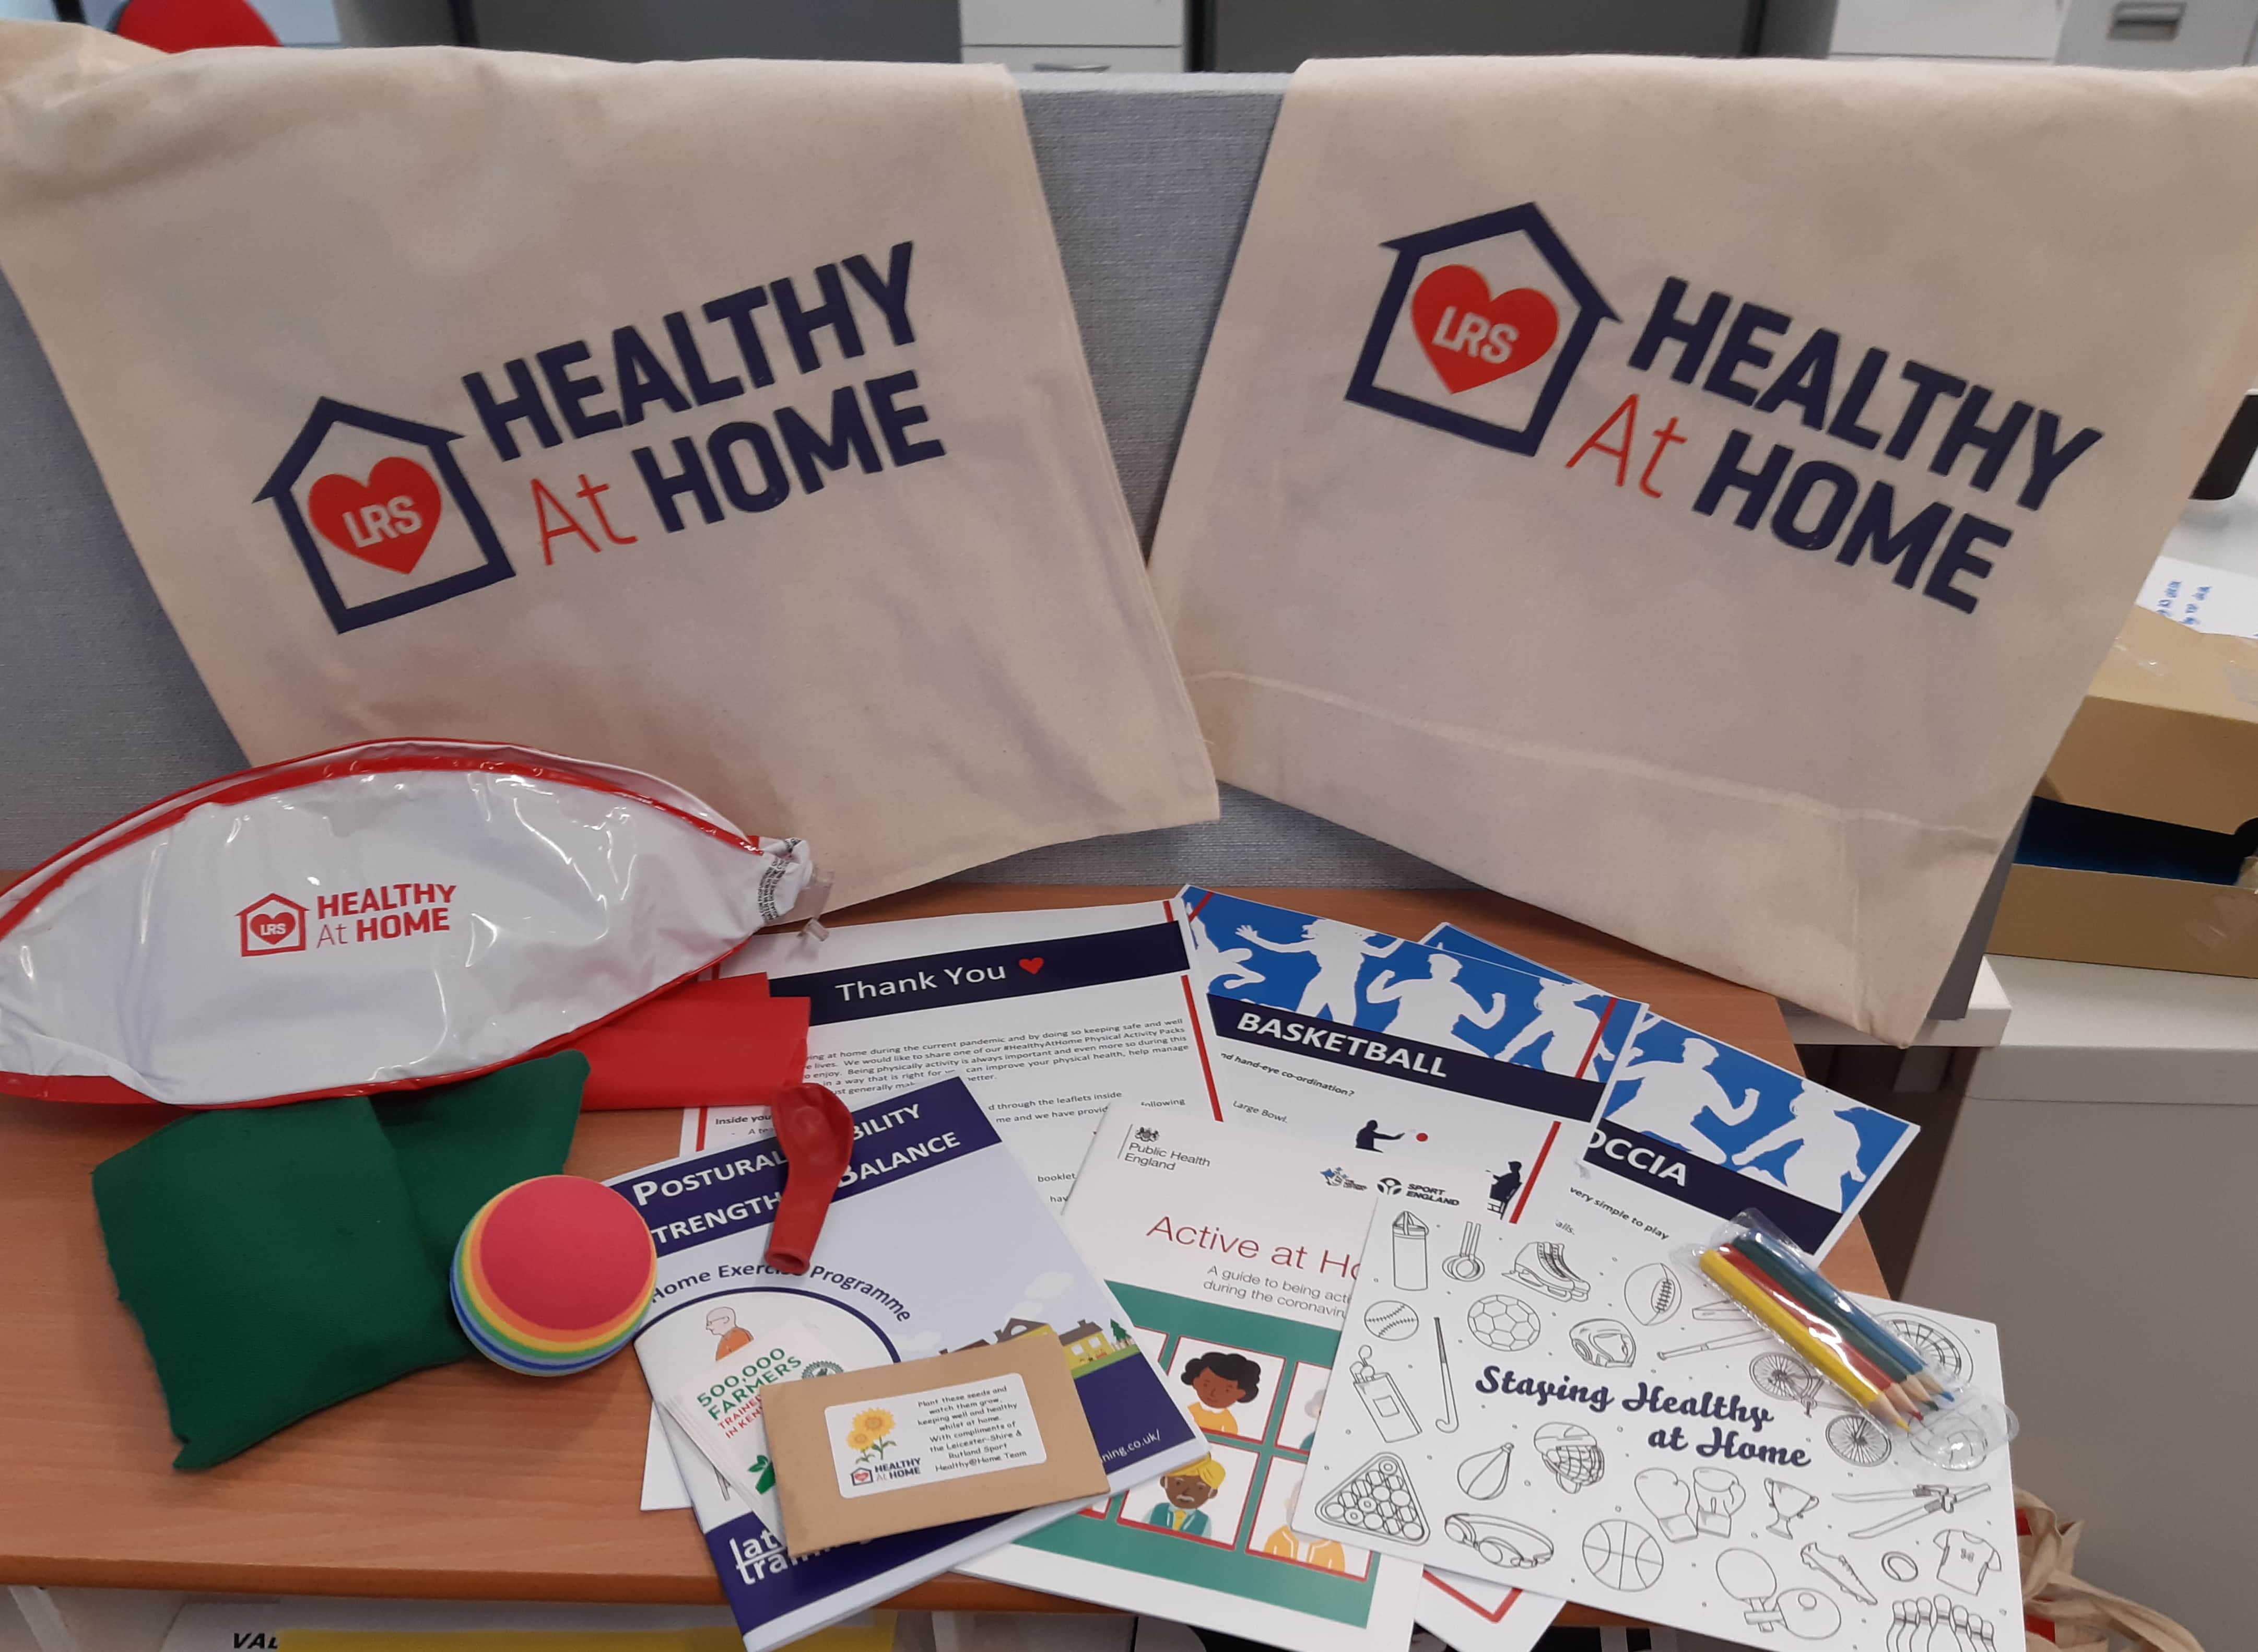 Contents of healthy at home packs including balls, bean bags, activity cards